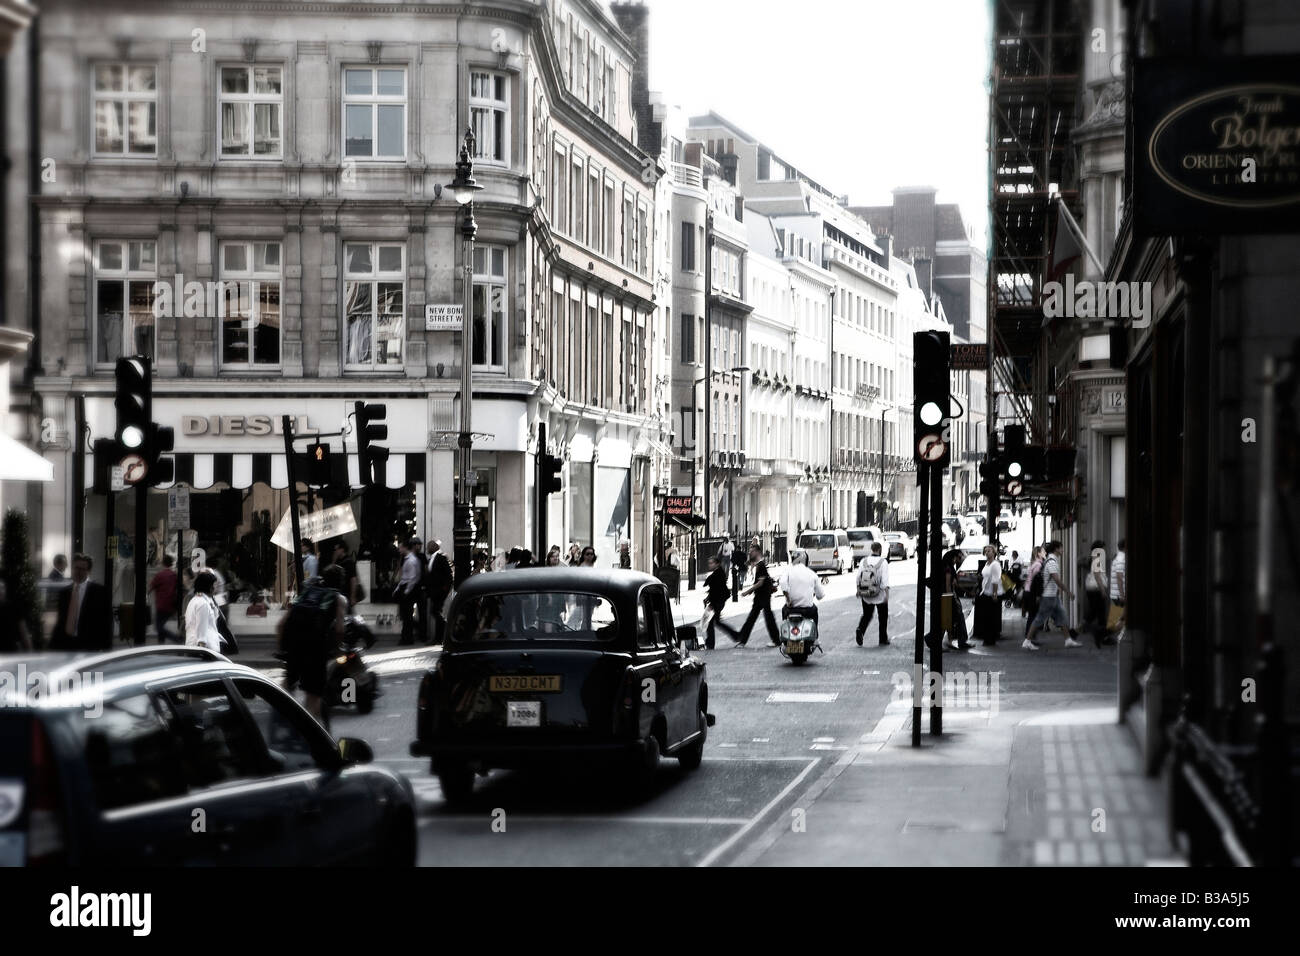 Busy street in London. - Stock Image